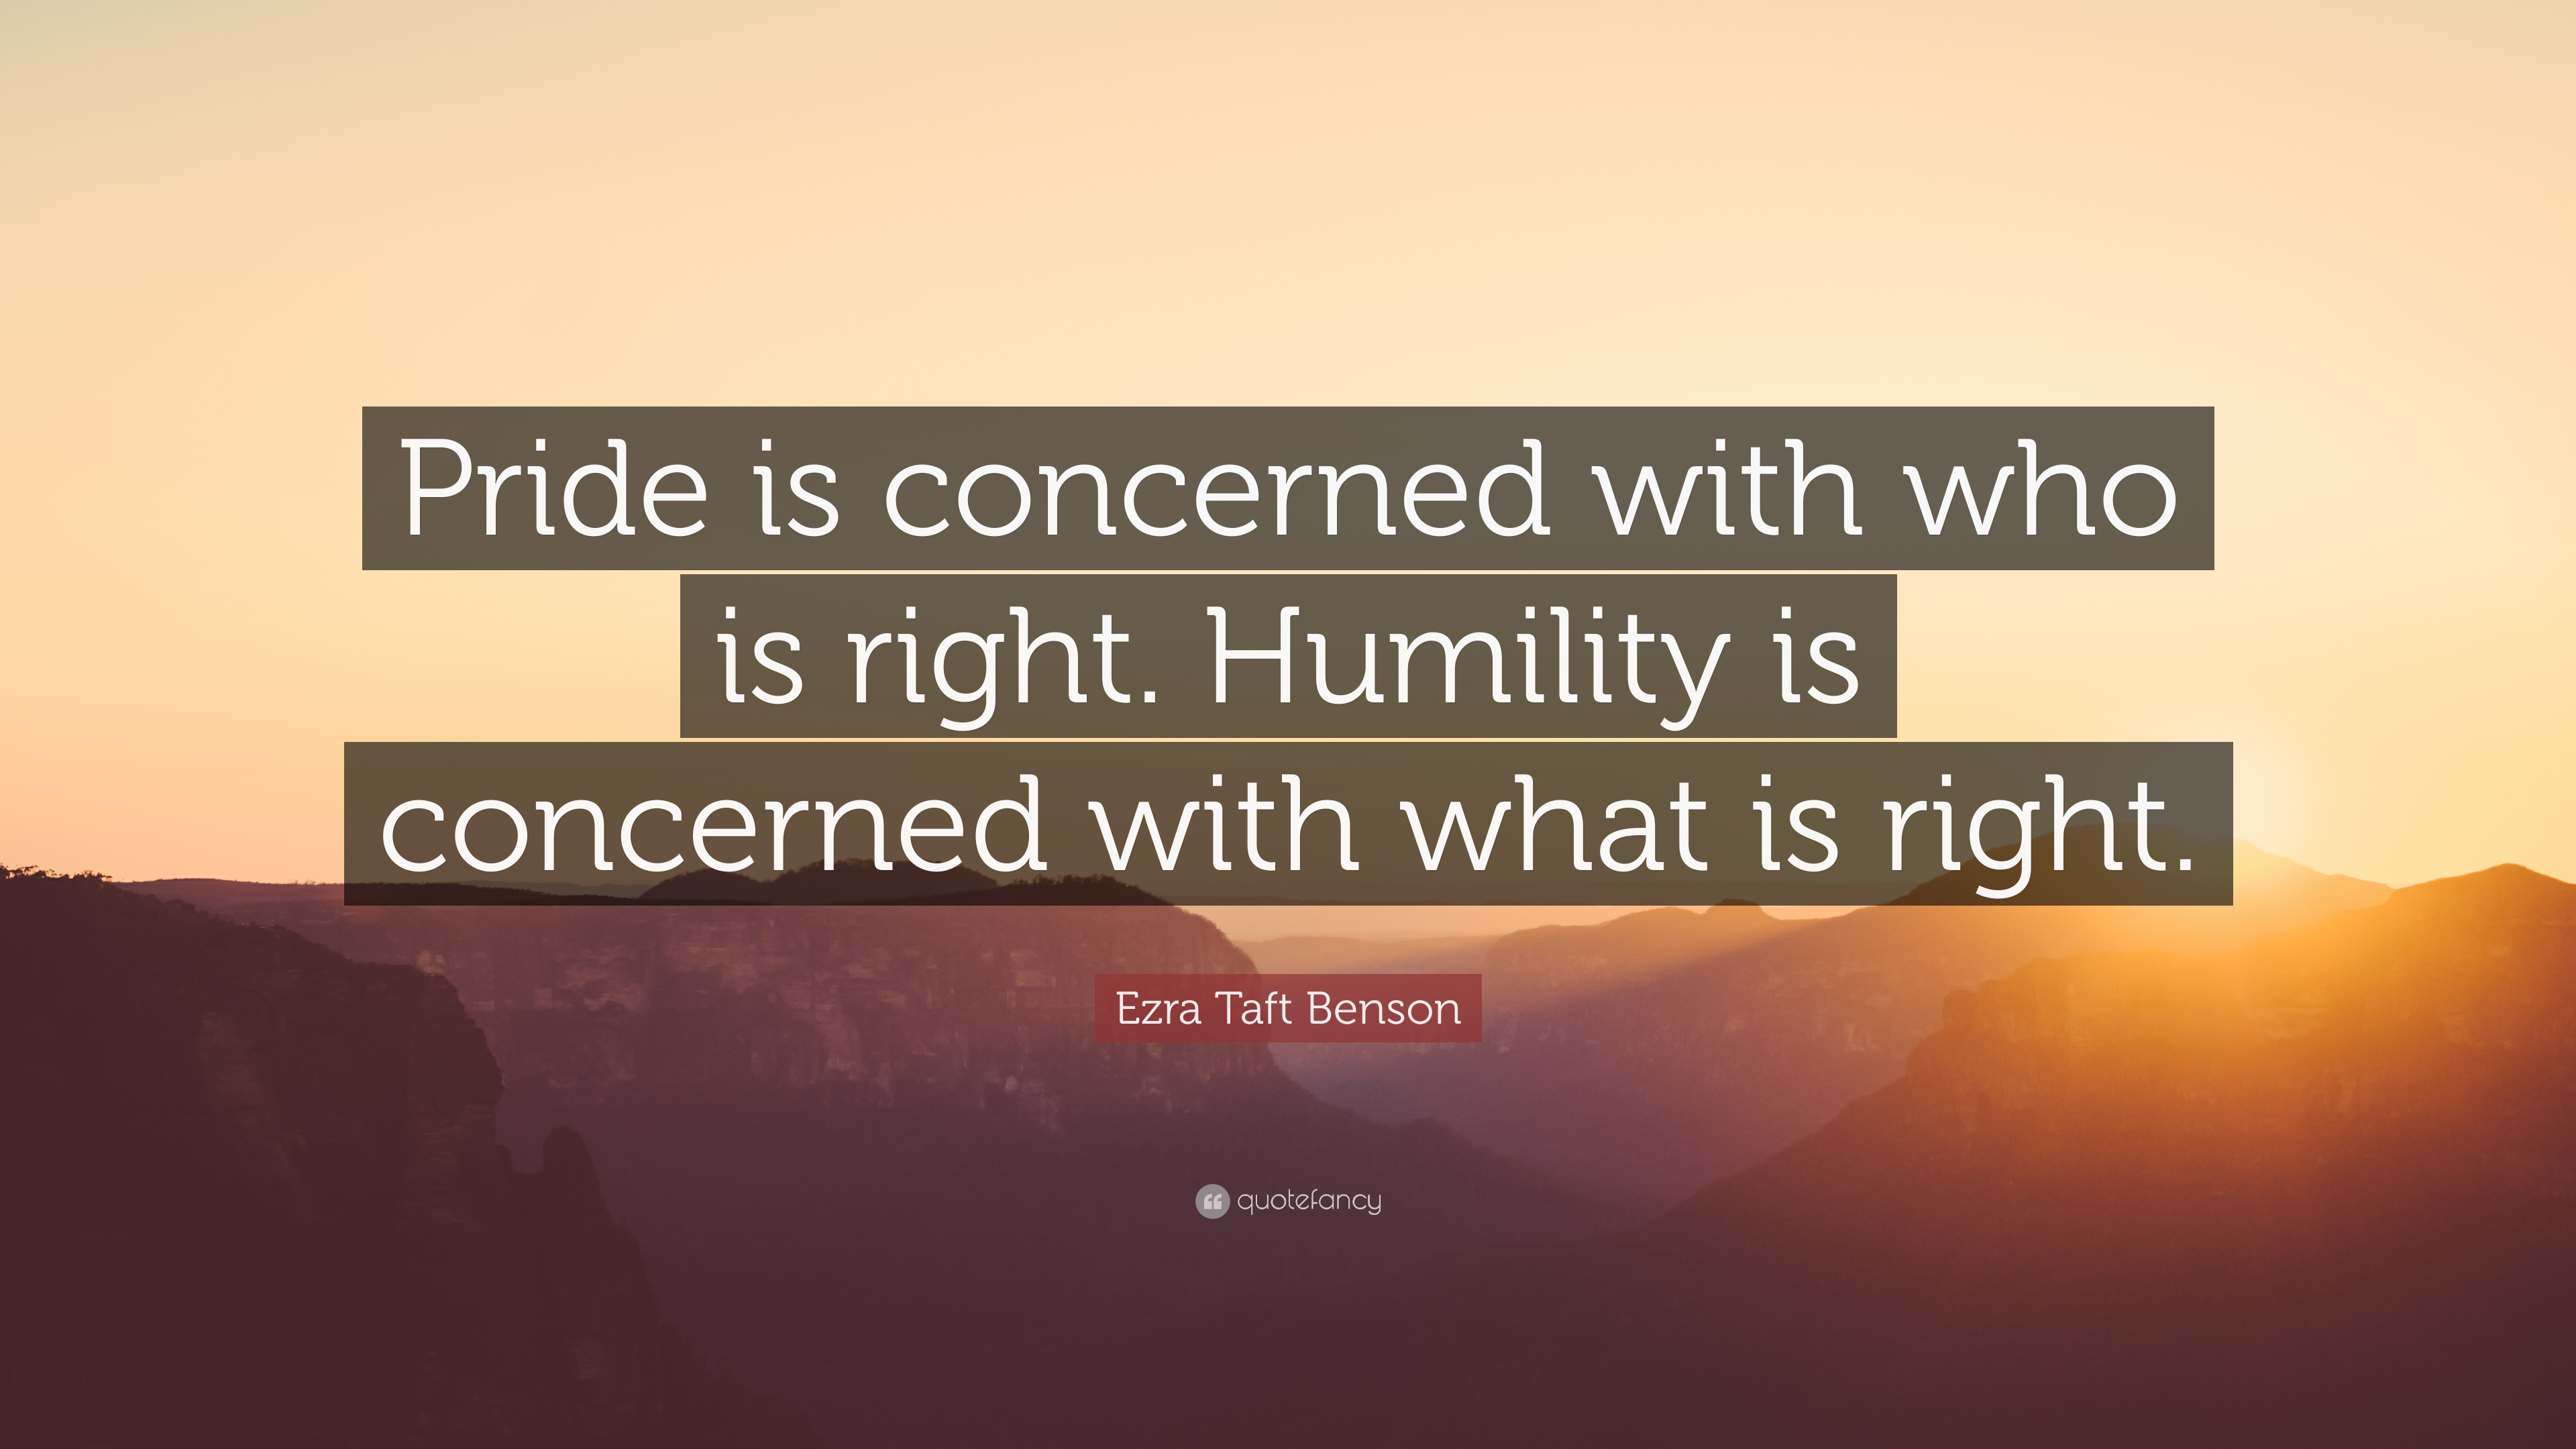 Images Of Inspiring Quotes Wallpaper Ezra Taft Benson Quote Pride Is Concerned With Who Is